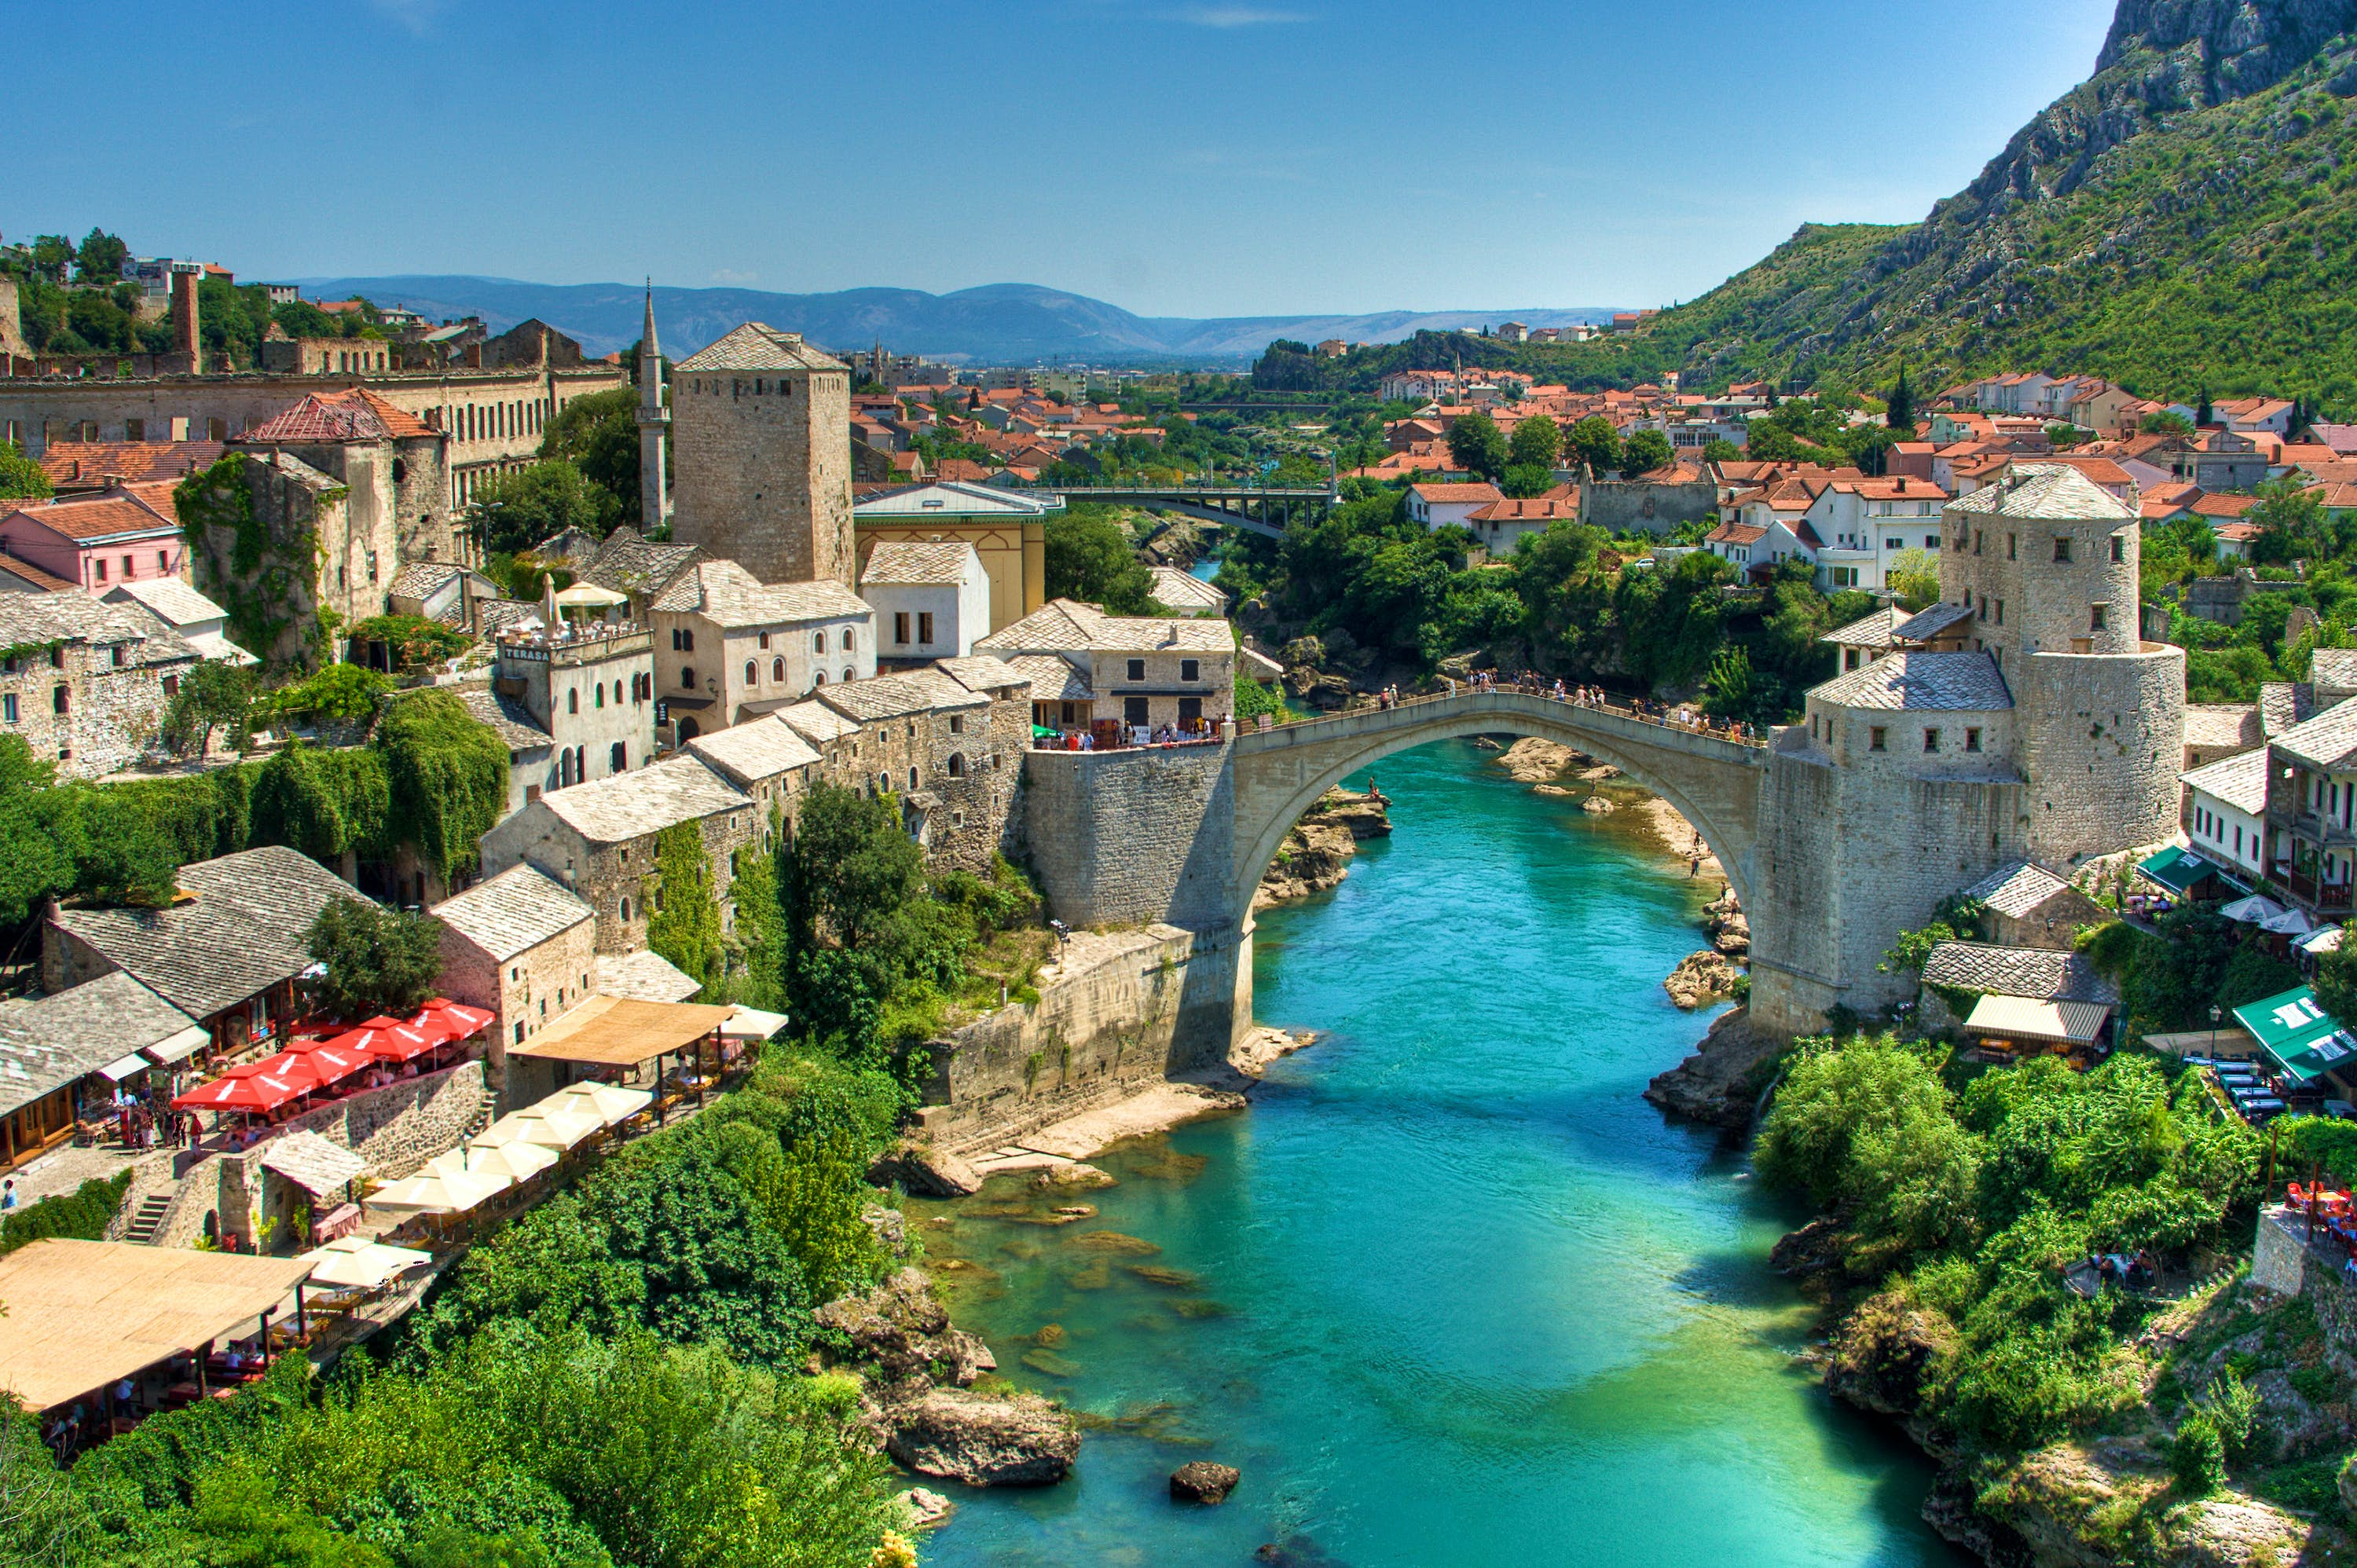 A turquoise river flows underneath an arched bridge, which connects two sides of the city of Mostar